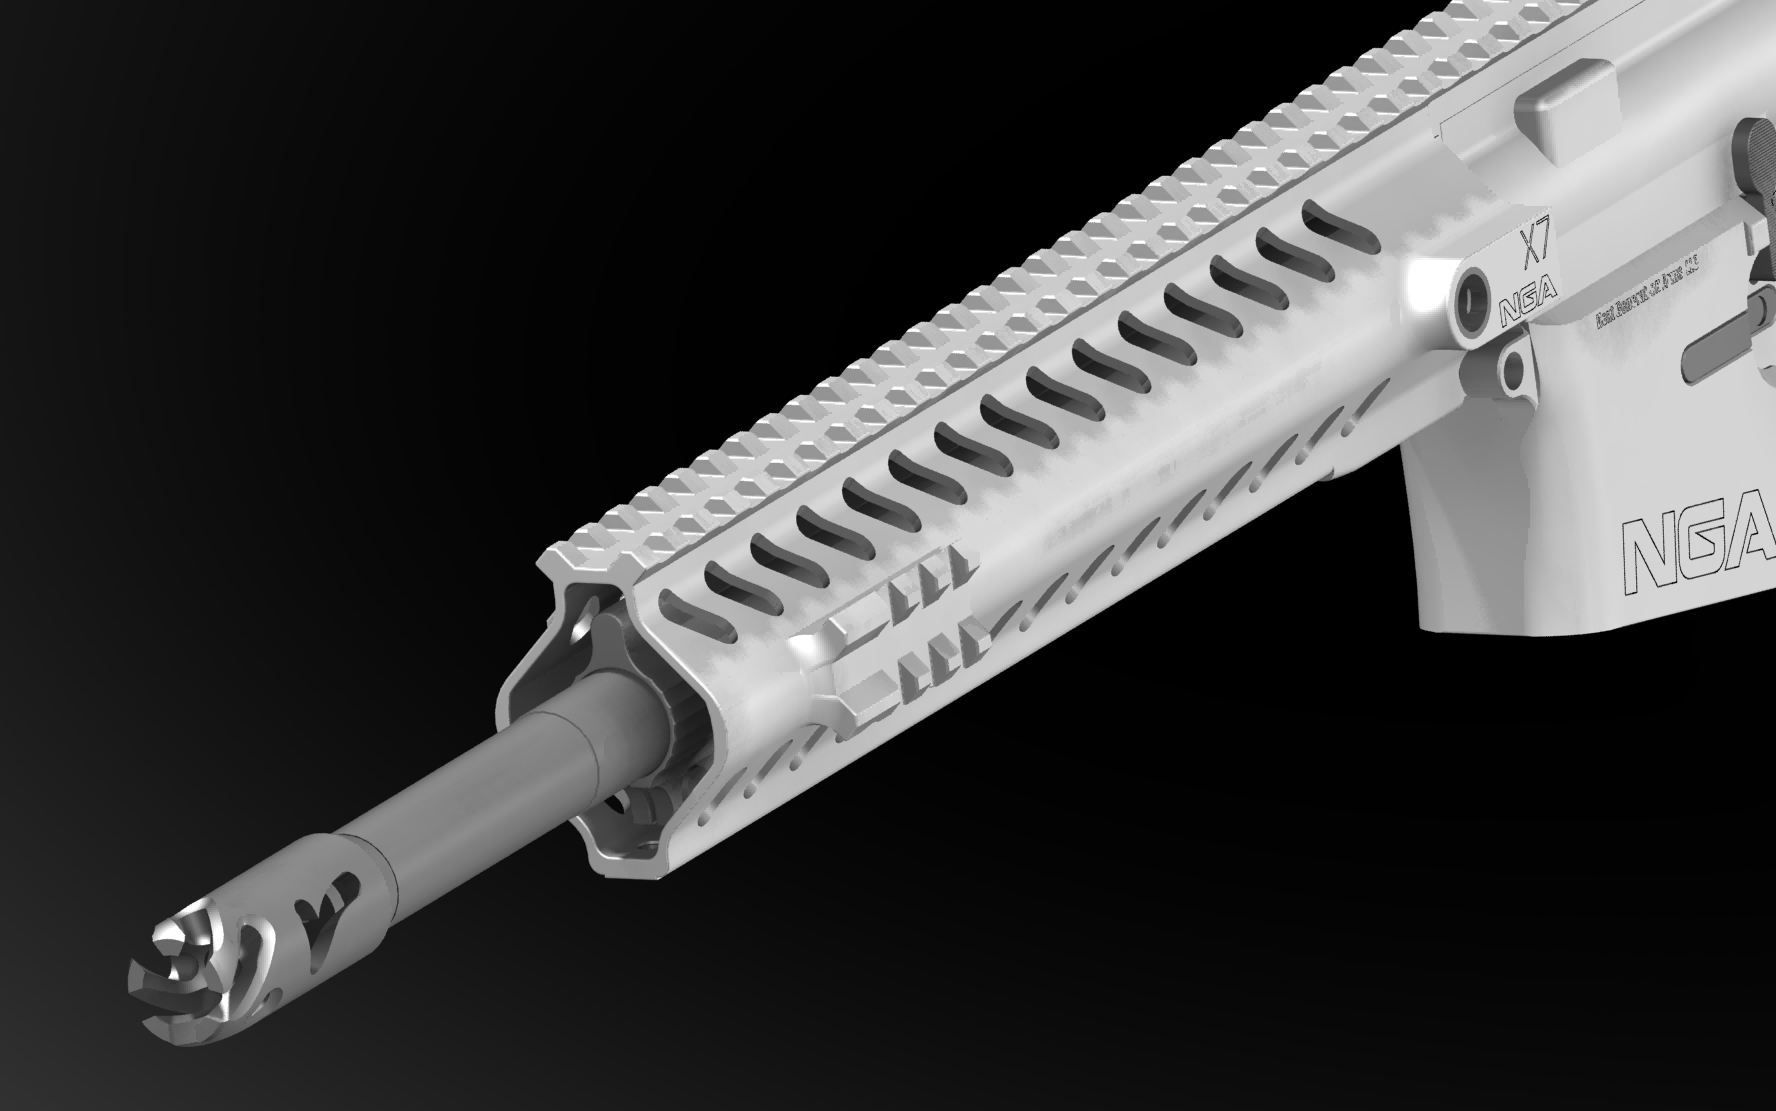 Next Generation Arms NGA X7 Tactical AR Carbine 2 <!  :en  >Next Generation Arms (NGA) X7 Mid Length Tactical AR Rifle/Carbine/SBR with Advanced Ceramic Technology (ACT) Self Lubricating and Protective Internal and External Ceramic Coating Tech (Video!)<!  :  >